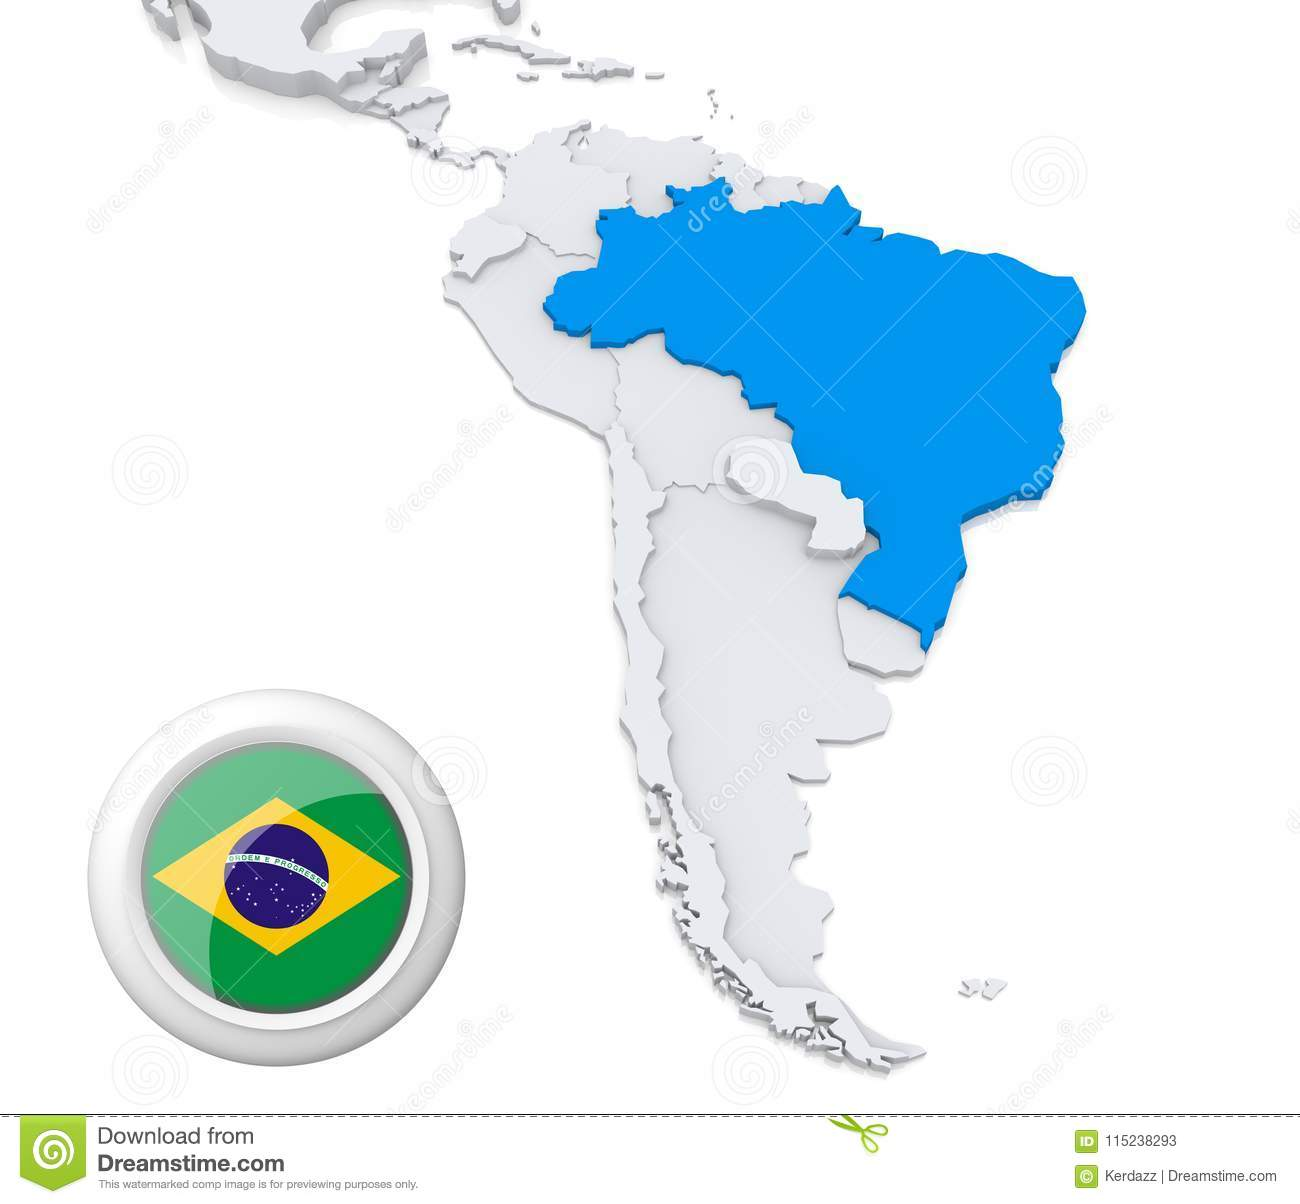 map of brazil in south america Brazil On A Map Of South America Stock Illustration Illustration map of brazil in south america